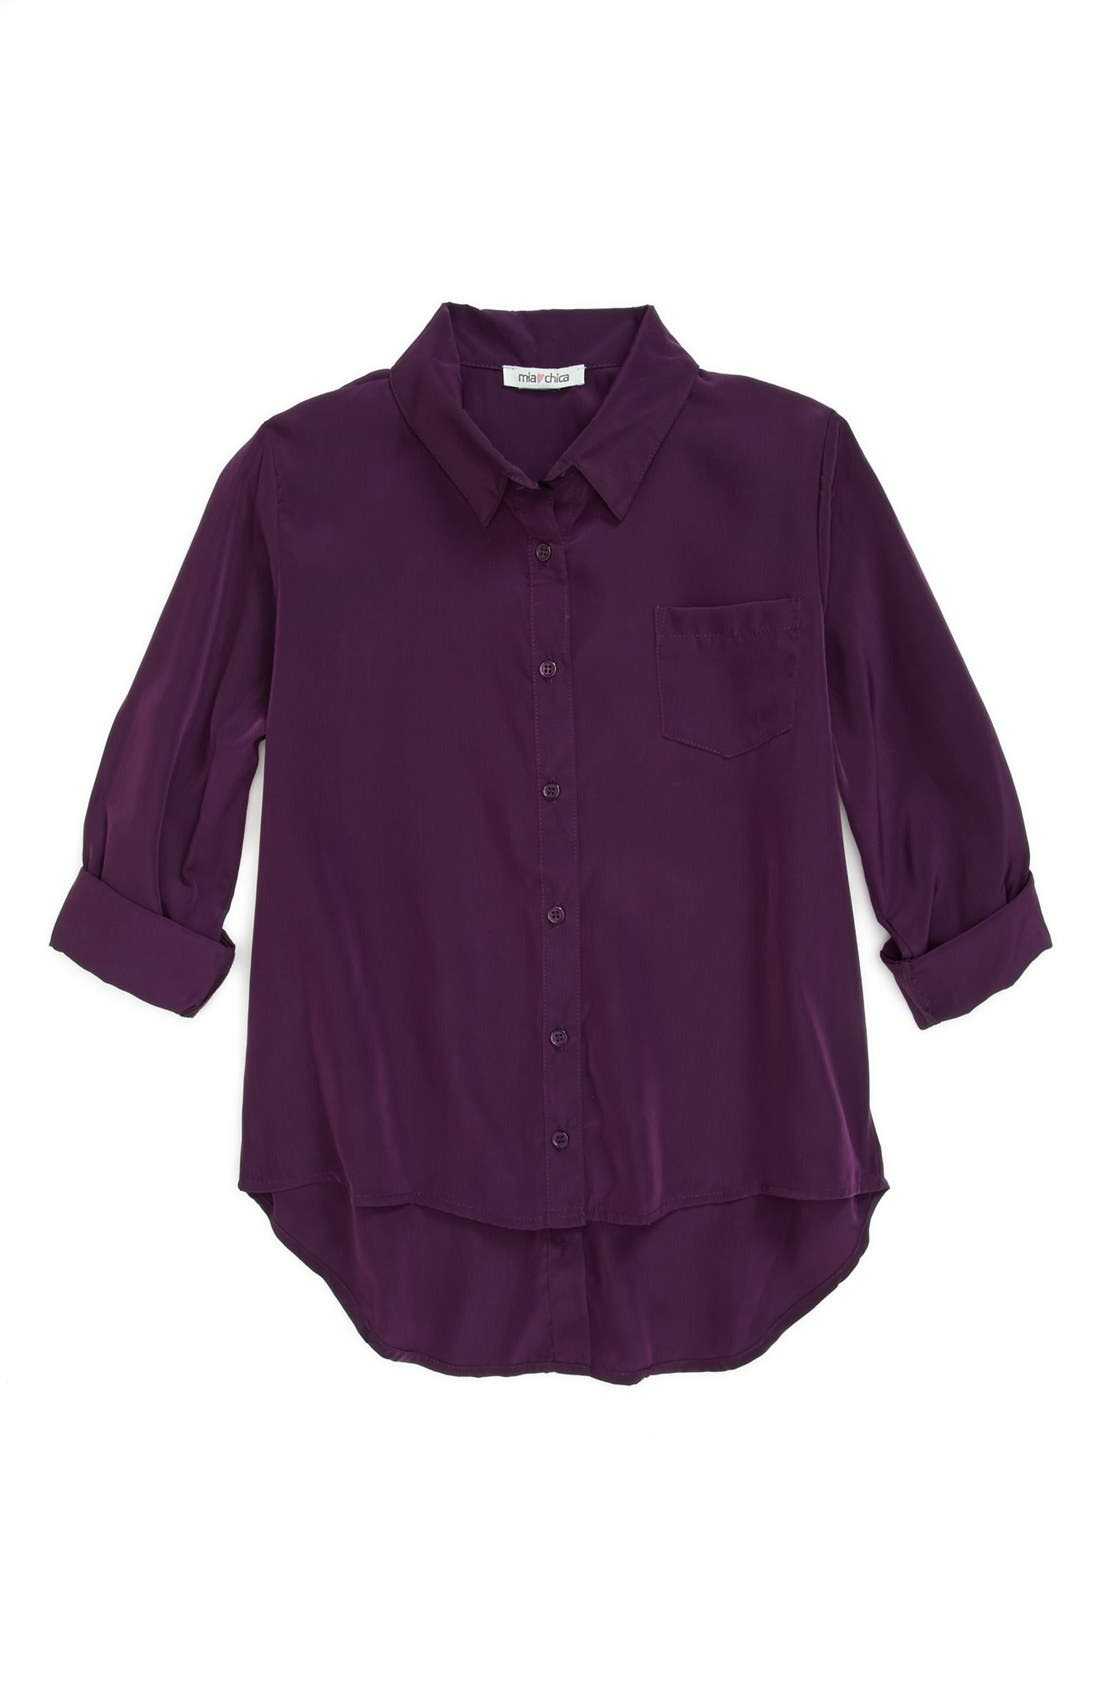 Alternate Image 1 Selected - Mia Chica 'Back Button' Woven Top (Big Girls)